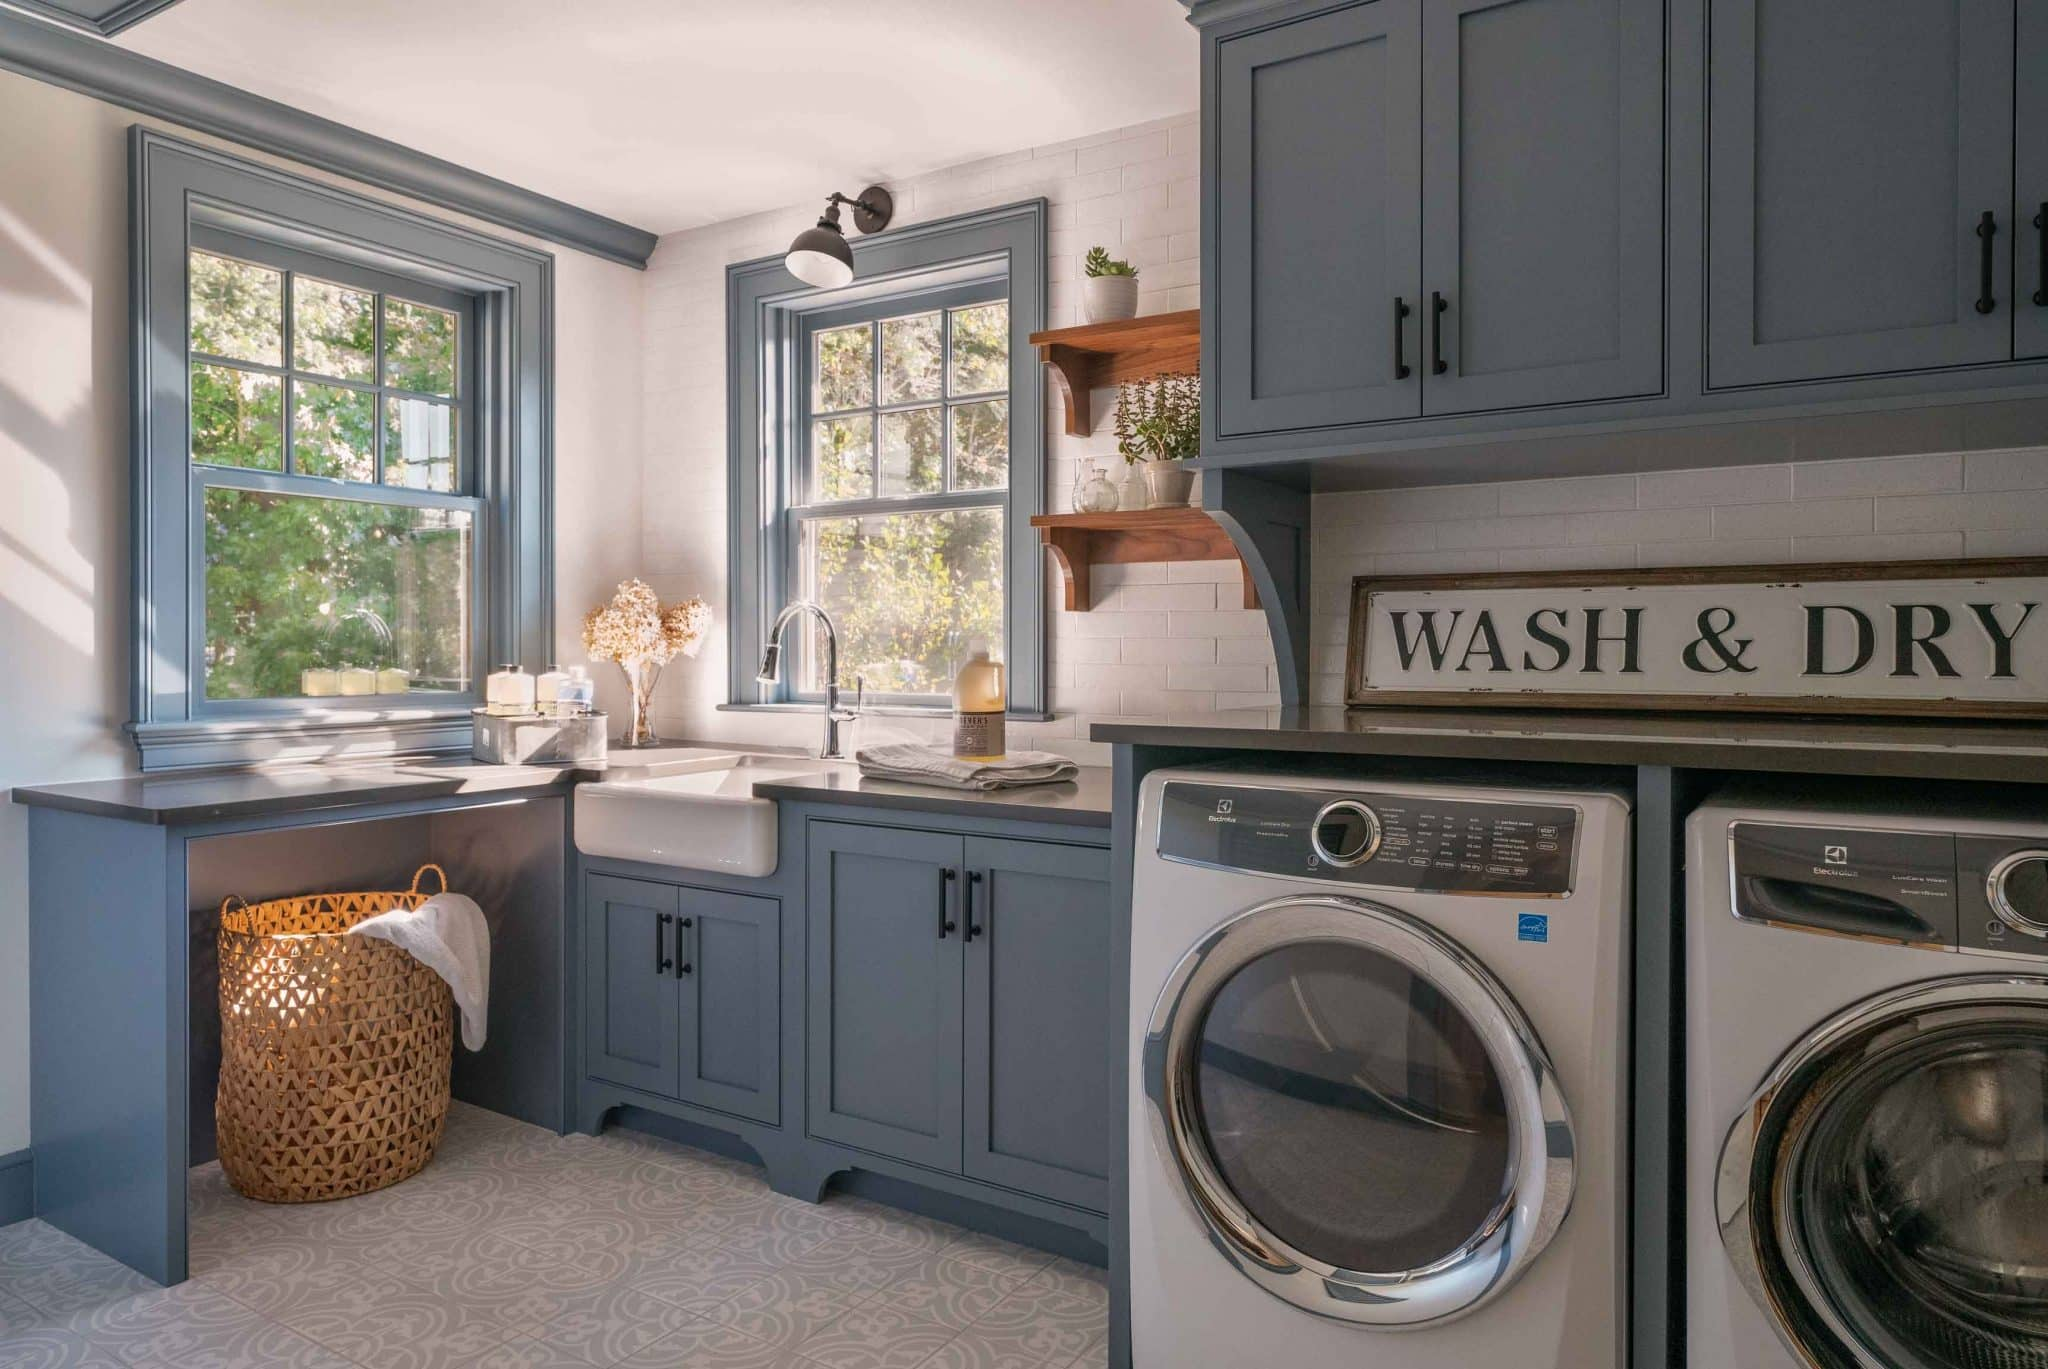 Farmhouse Flair Ipswich MA Laundry Room